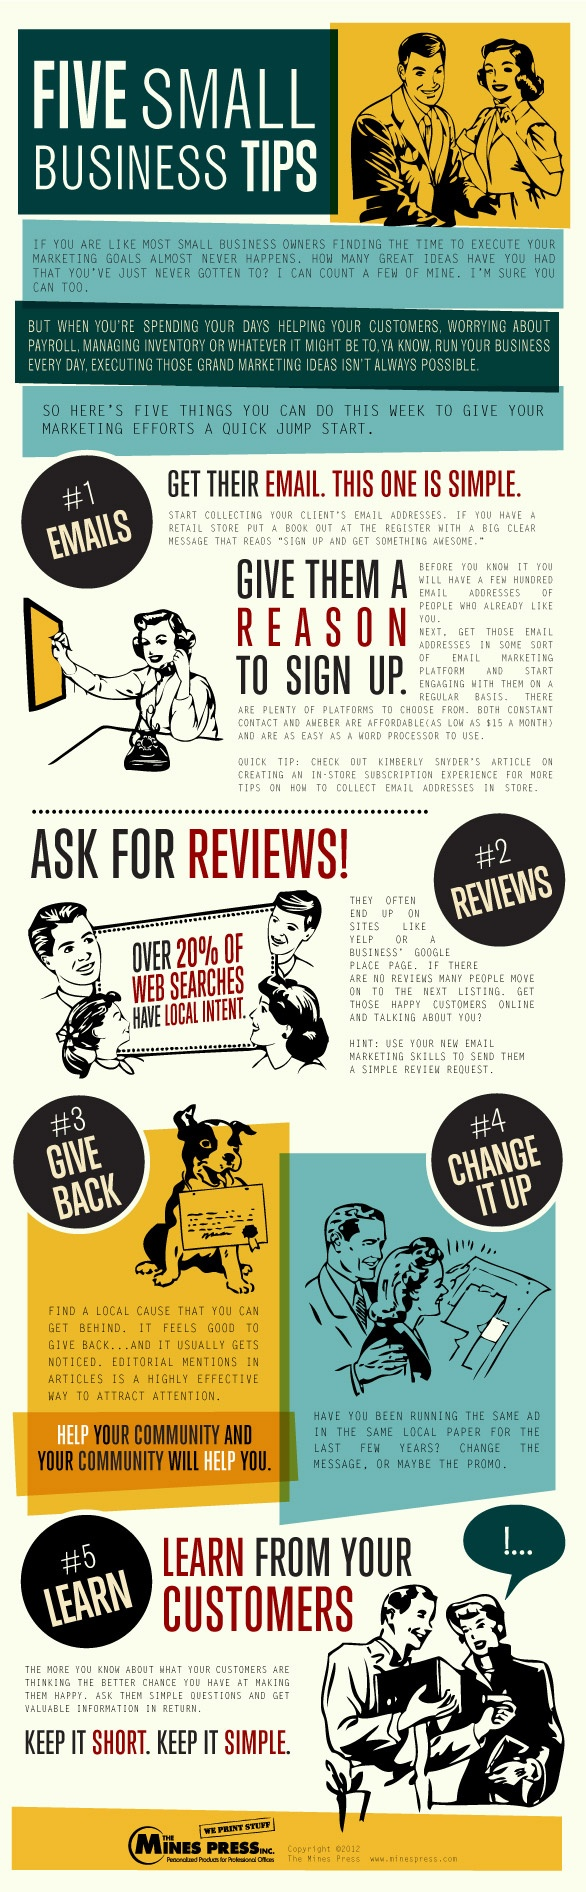 [Infographic] Top 5 Small Business Tips